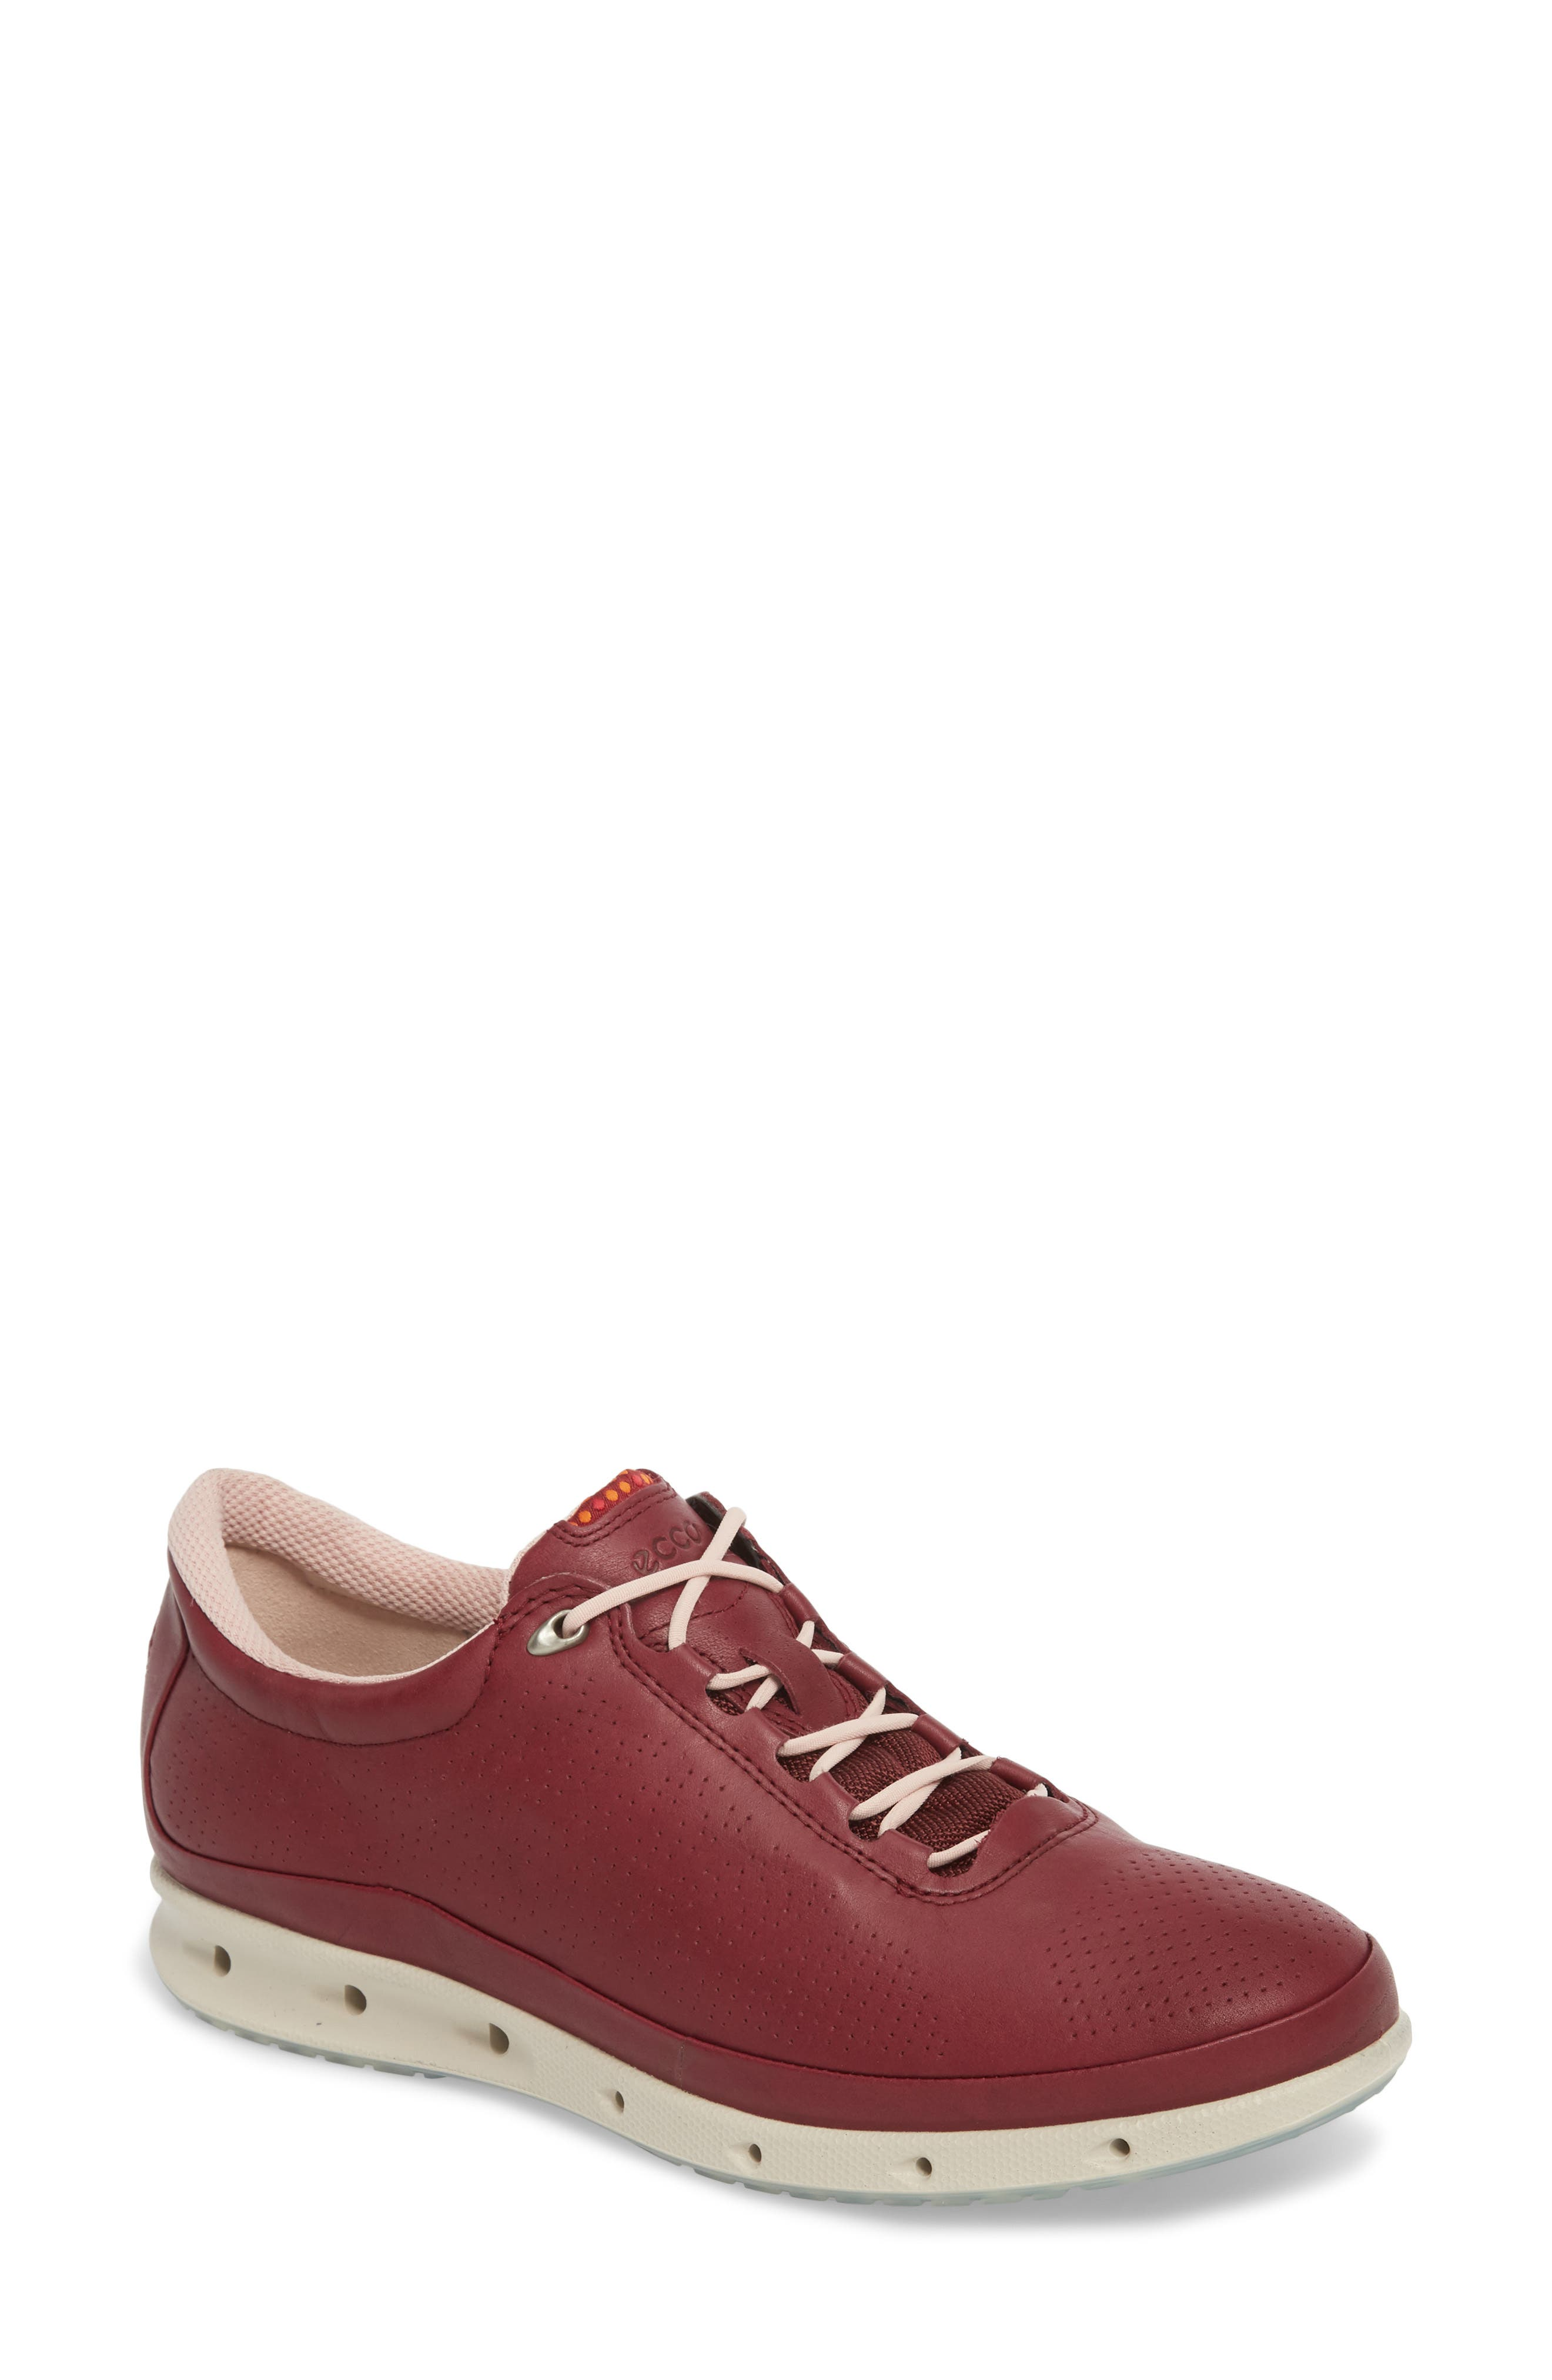 ECCO 'Cool' Waterproof Perforated Leather Sneaker (Women)